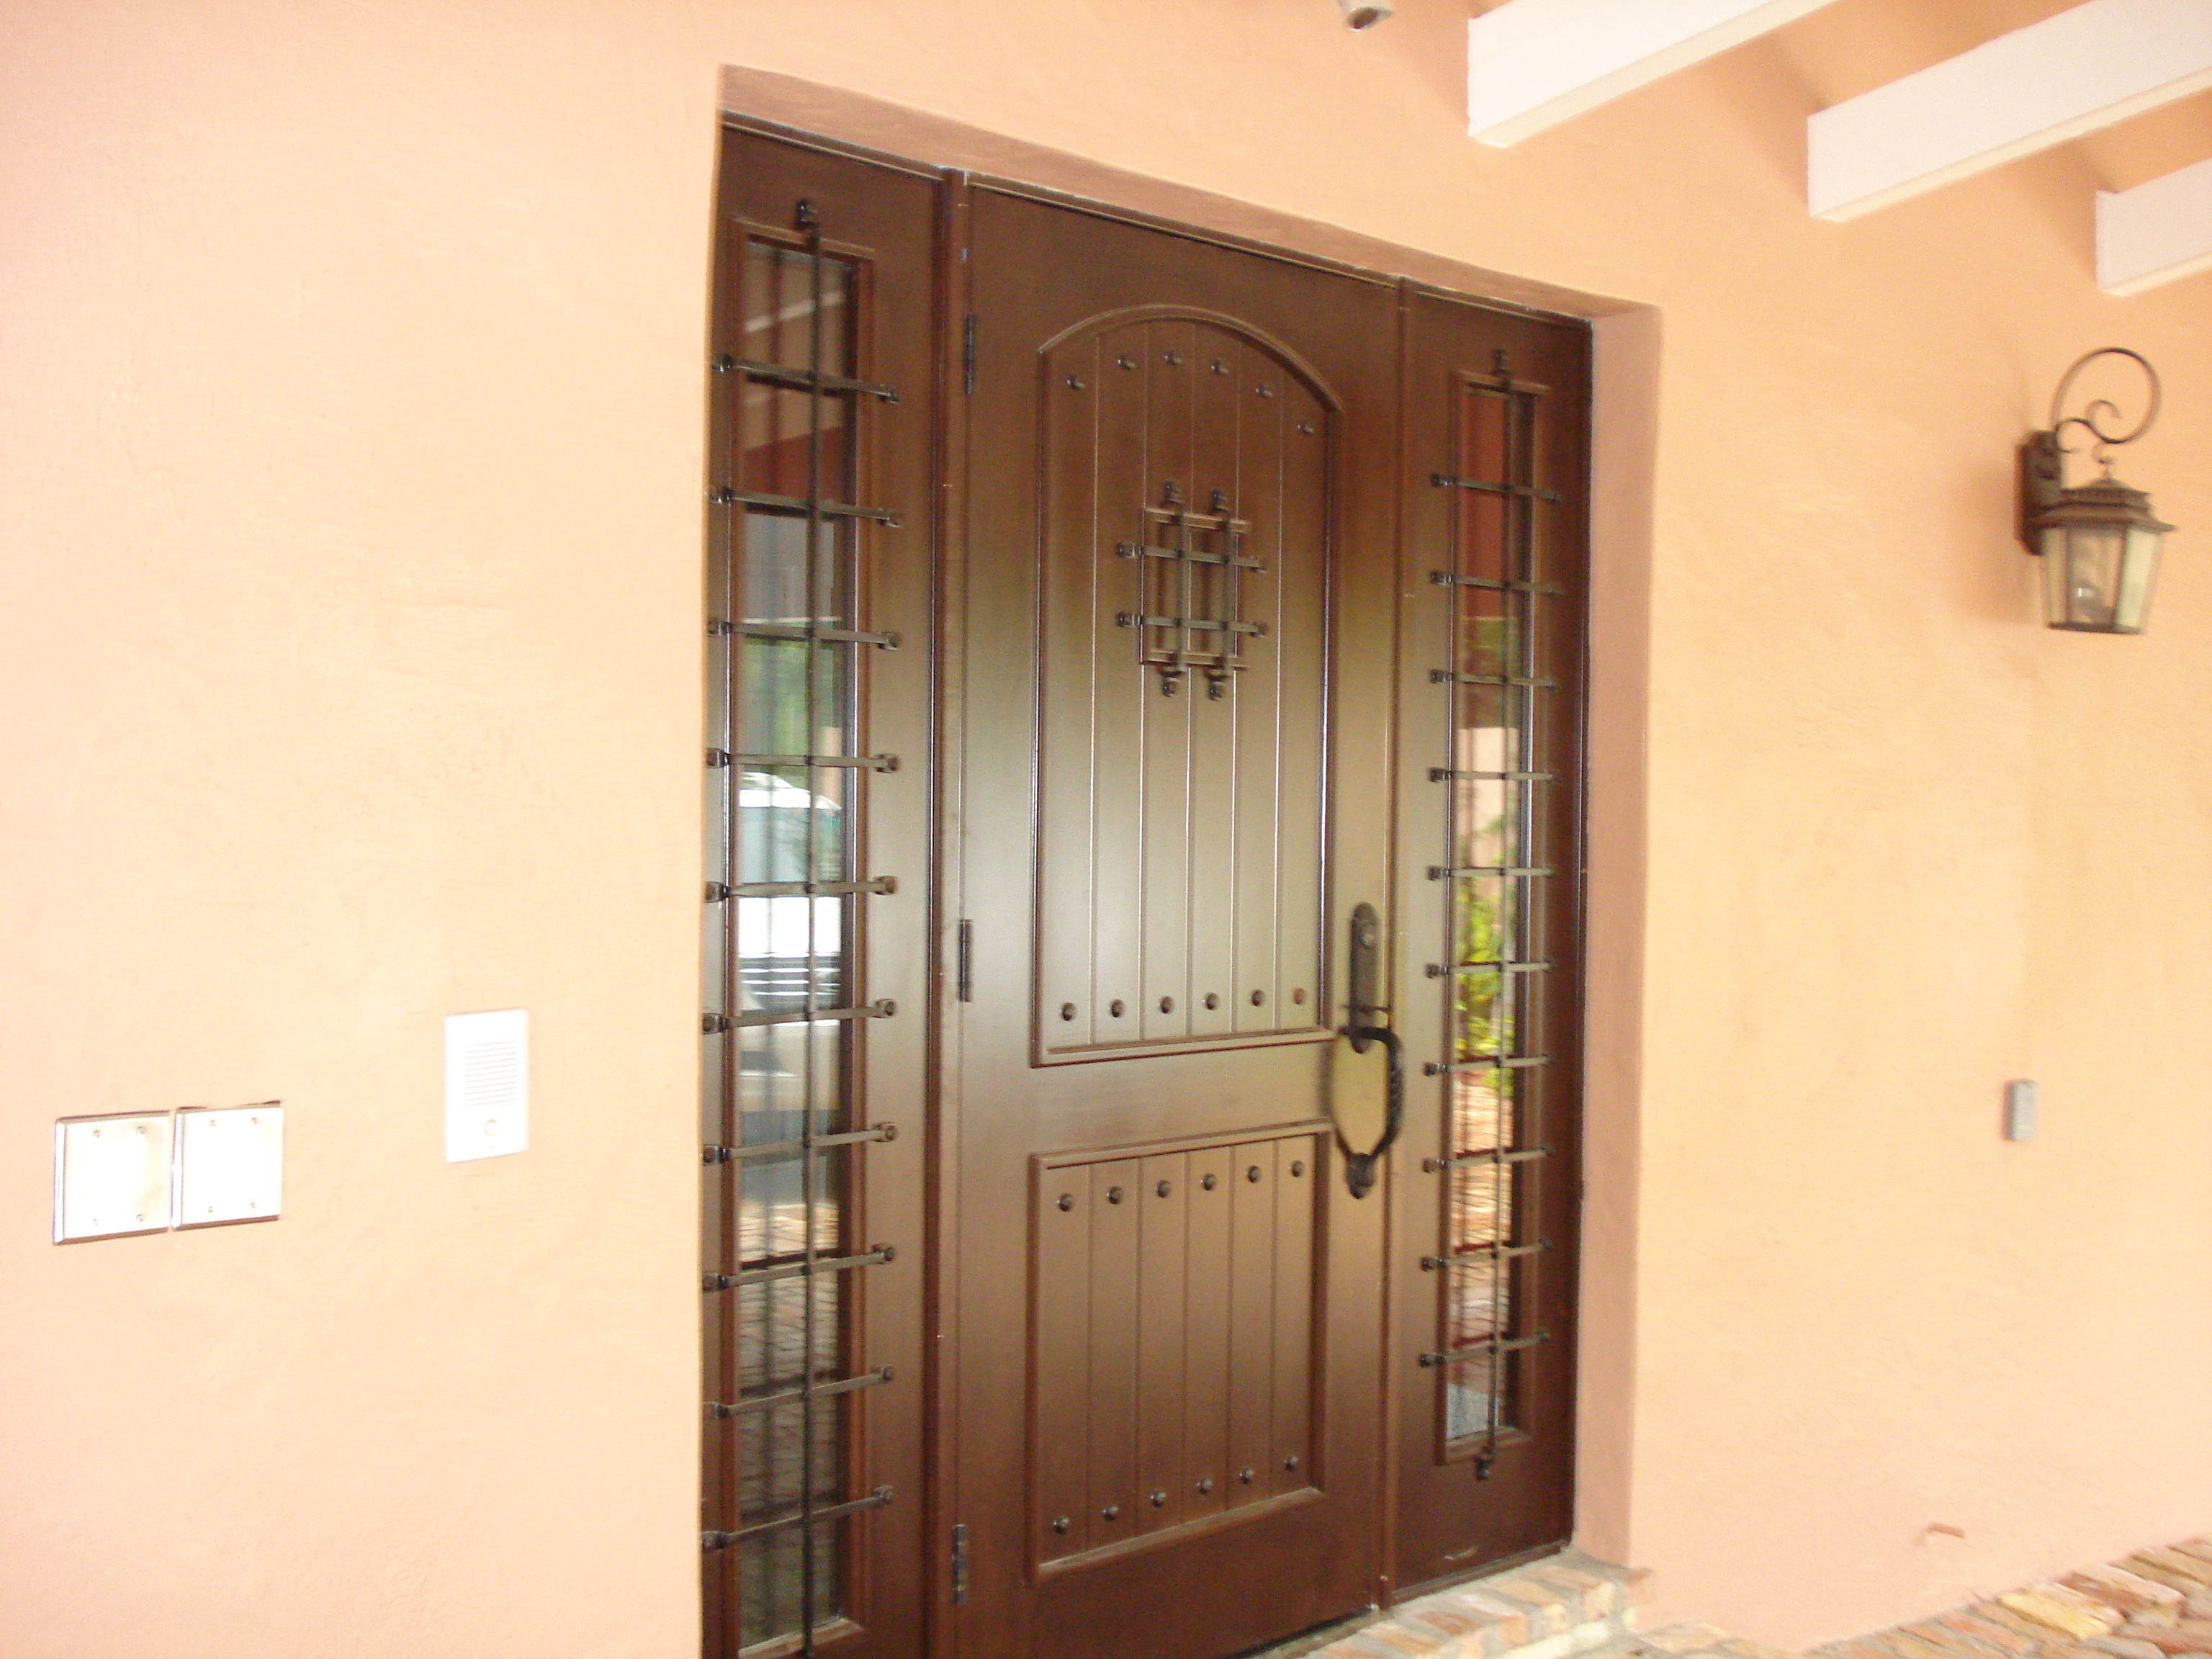 2304 #C26C09 Mahogany Front Doors Wrought Iron Speak Easy Grill With Sidelights  pic Metal Entry Doors With Sidelights 39213072